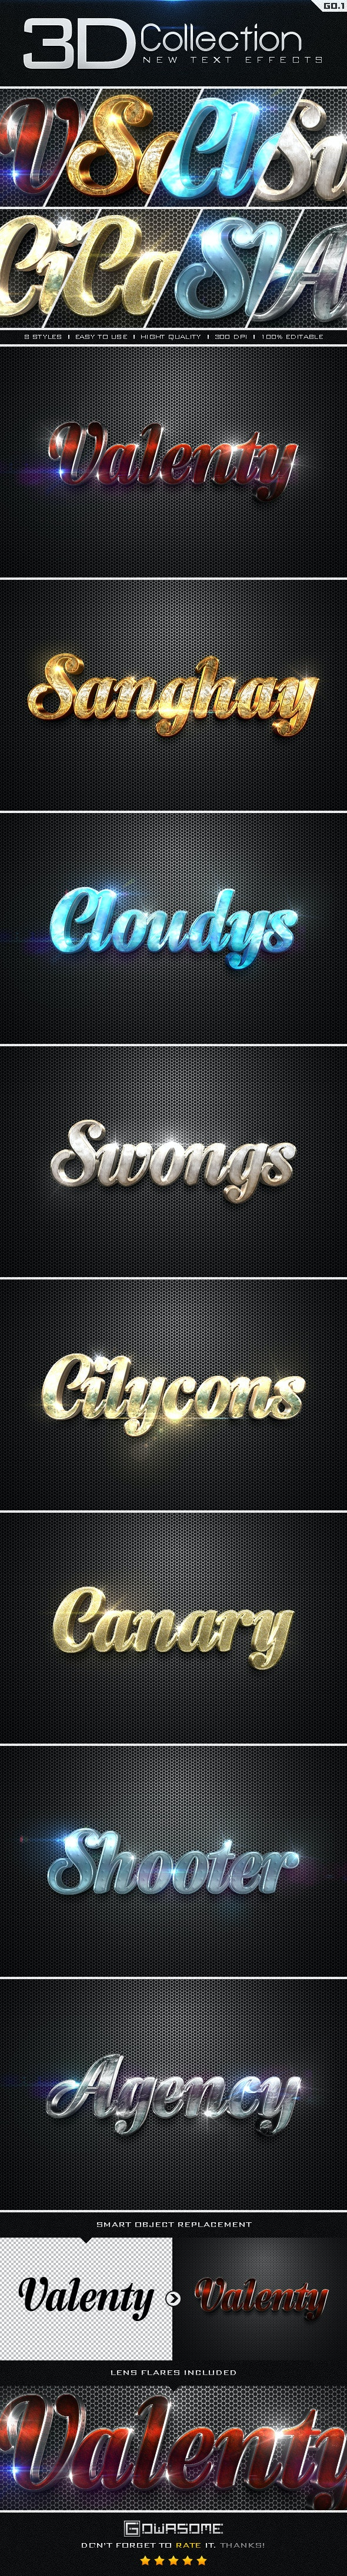 New 3D Collection Text Effects GO.1 - Text Effects Styles